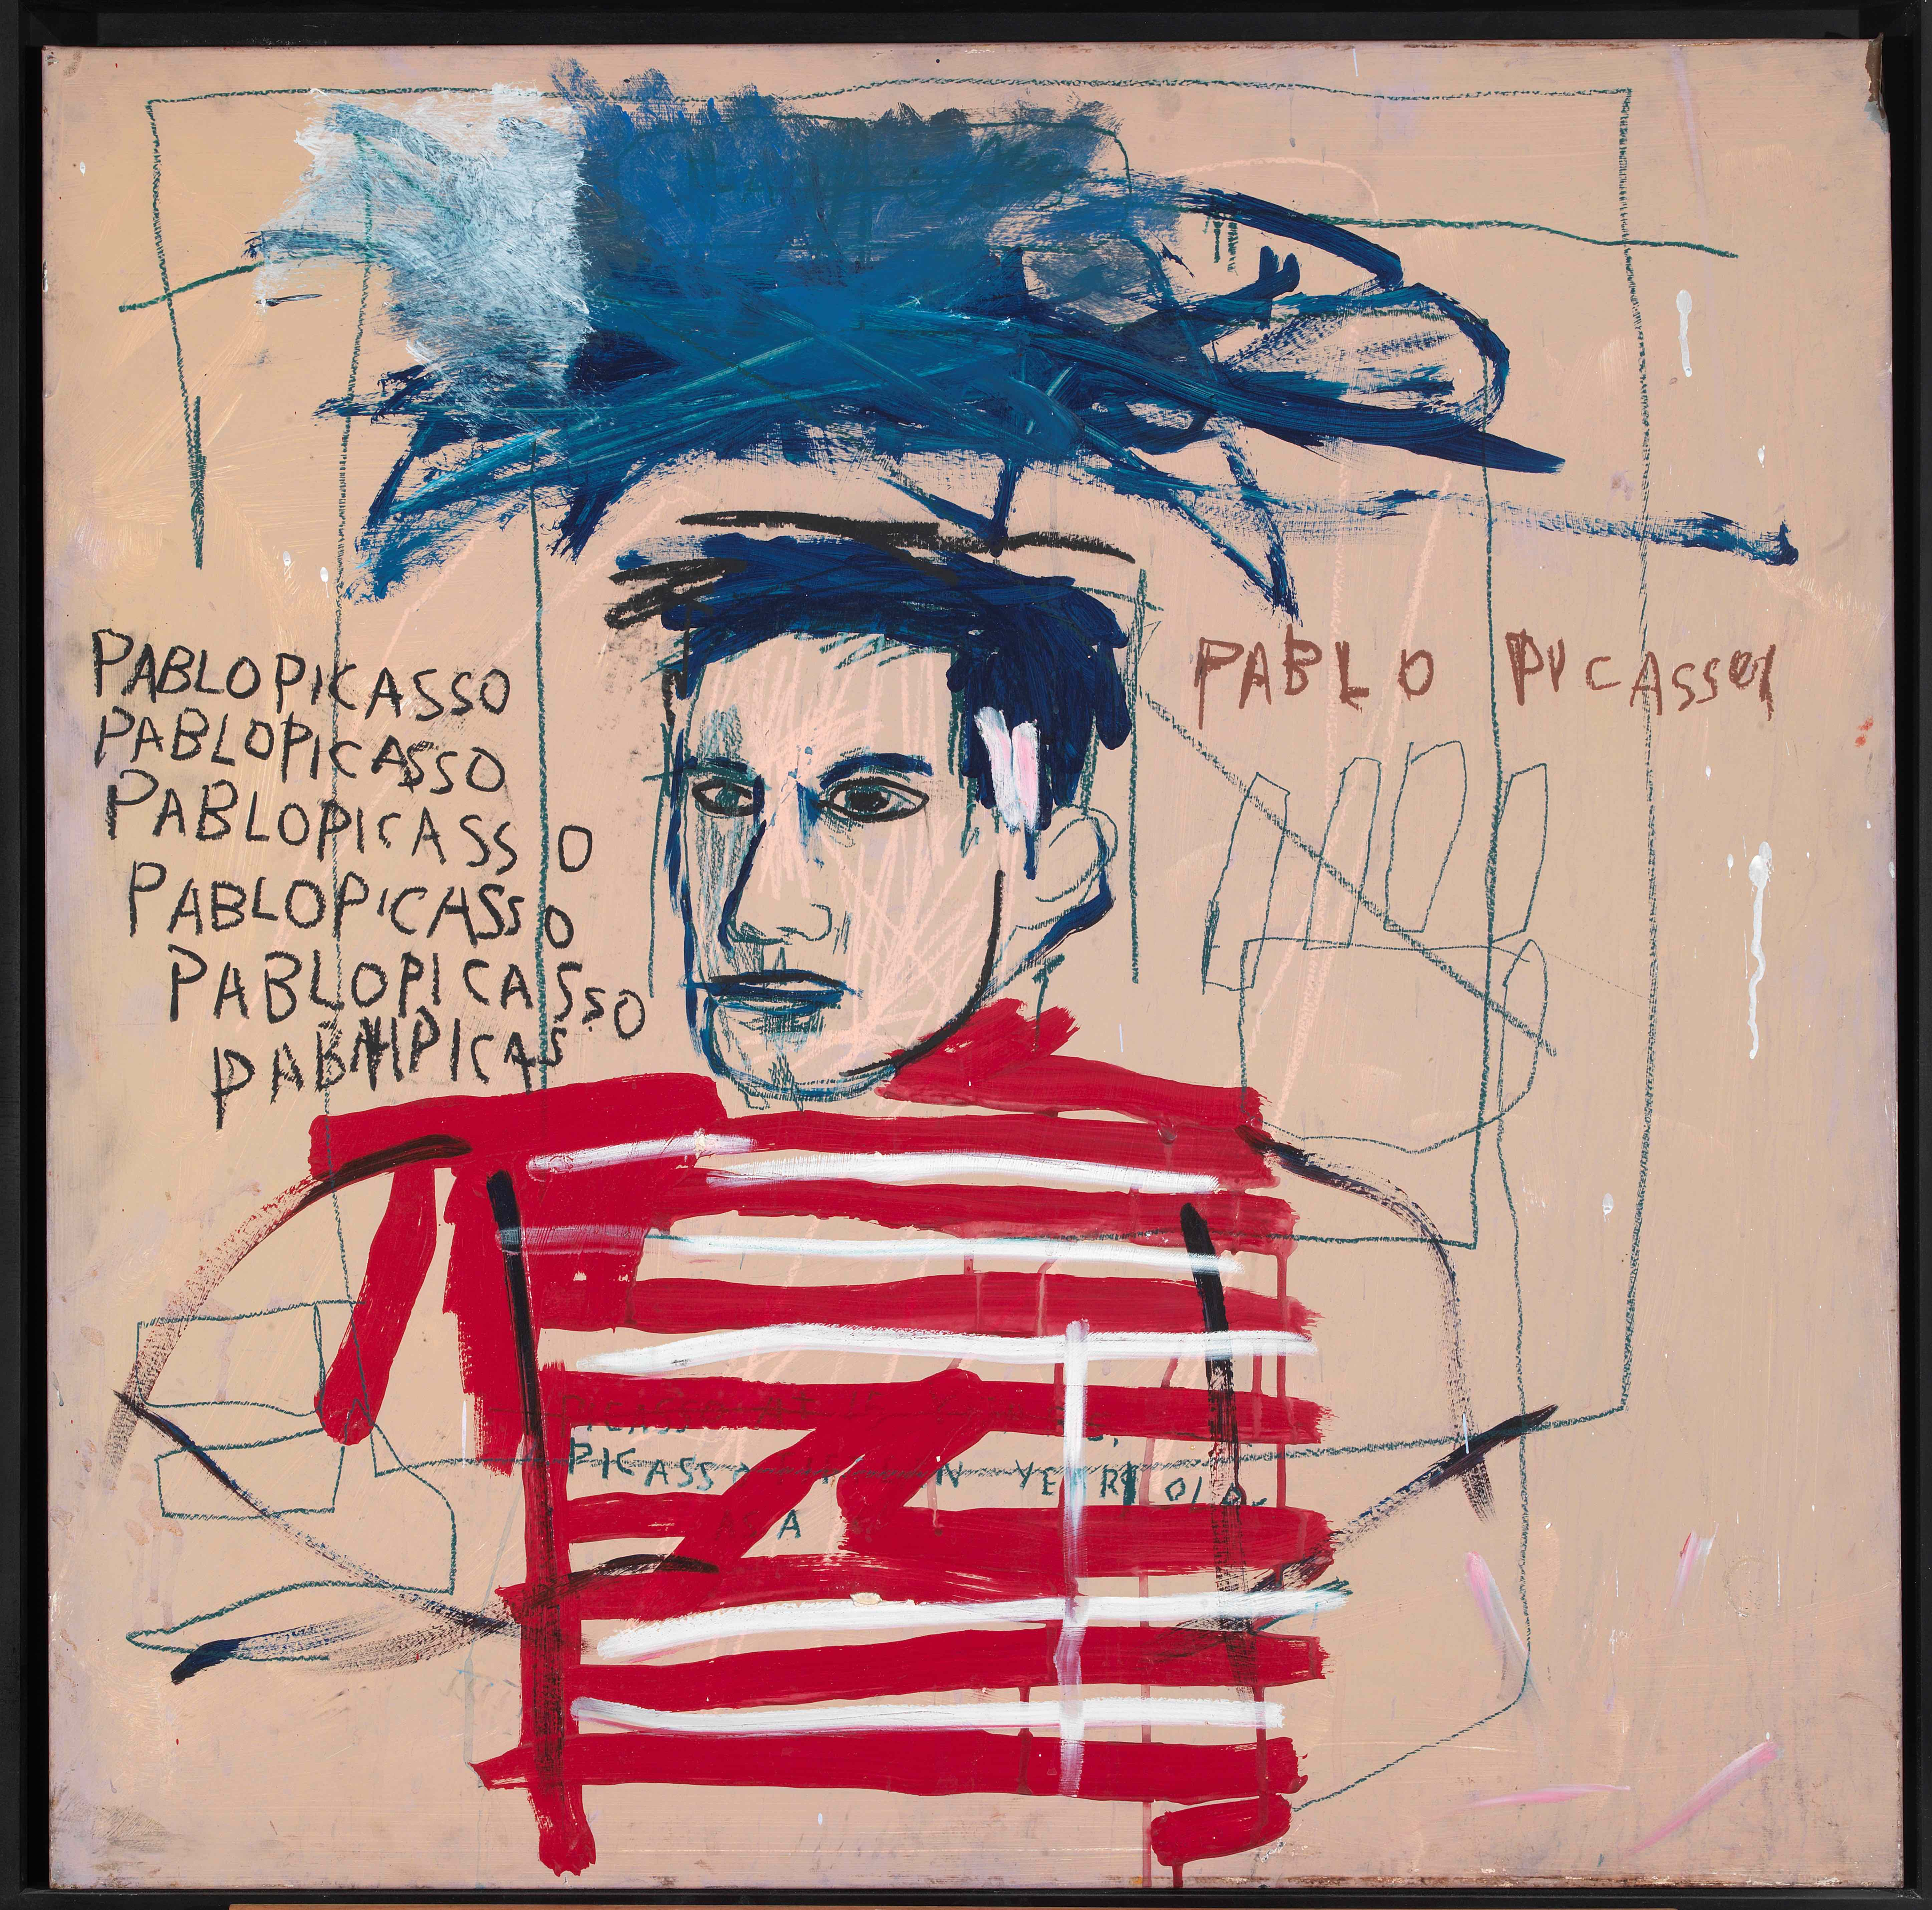 Jean-Michel Basquiat Untitled (Pablo Picasso), 1984 Private collection, Italy. © The Estate of Jean-Michel Basquiat. Licensed by Artestar, New York.